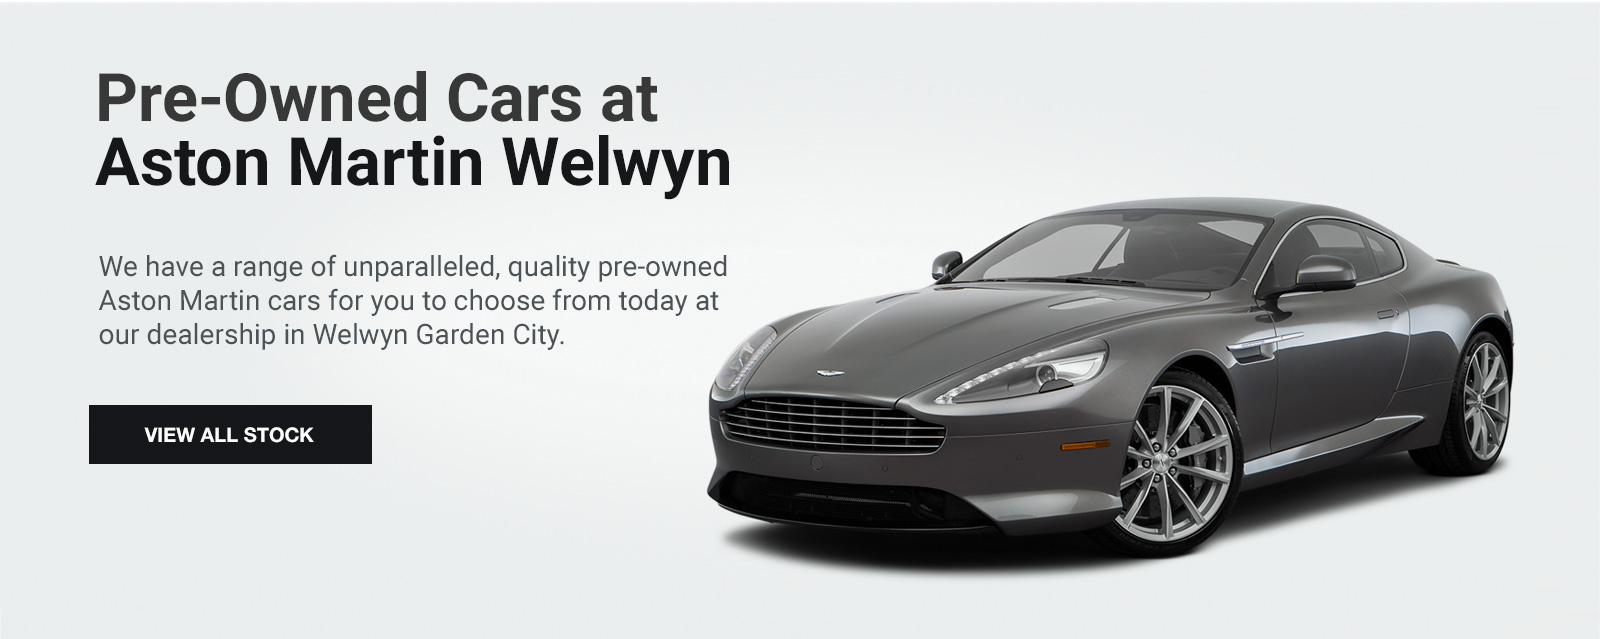 Pre-Owned Cars at Aston Martin Welwyn